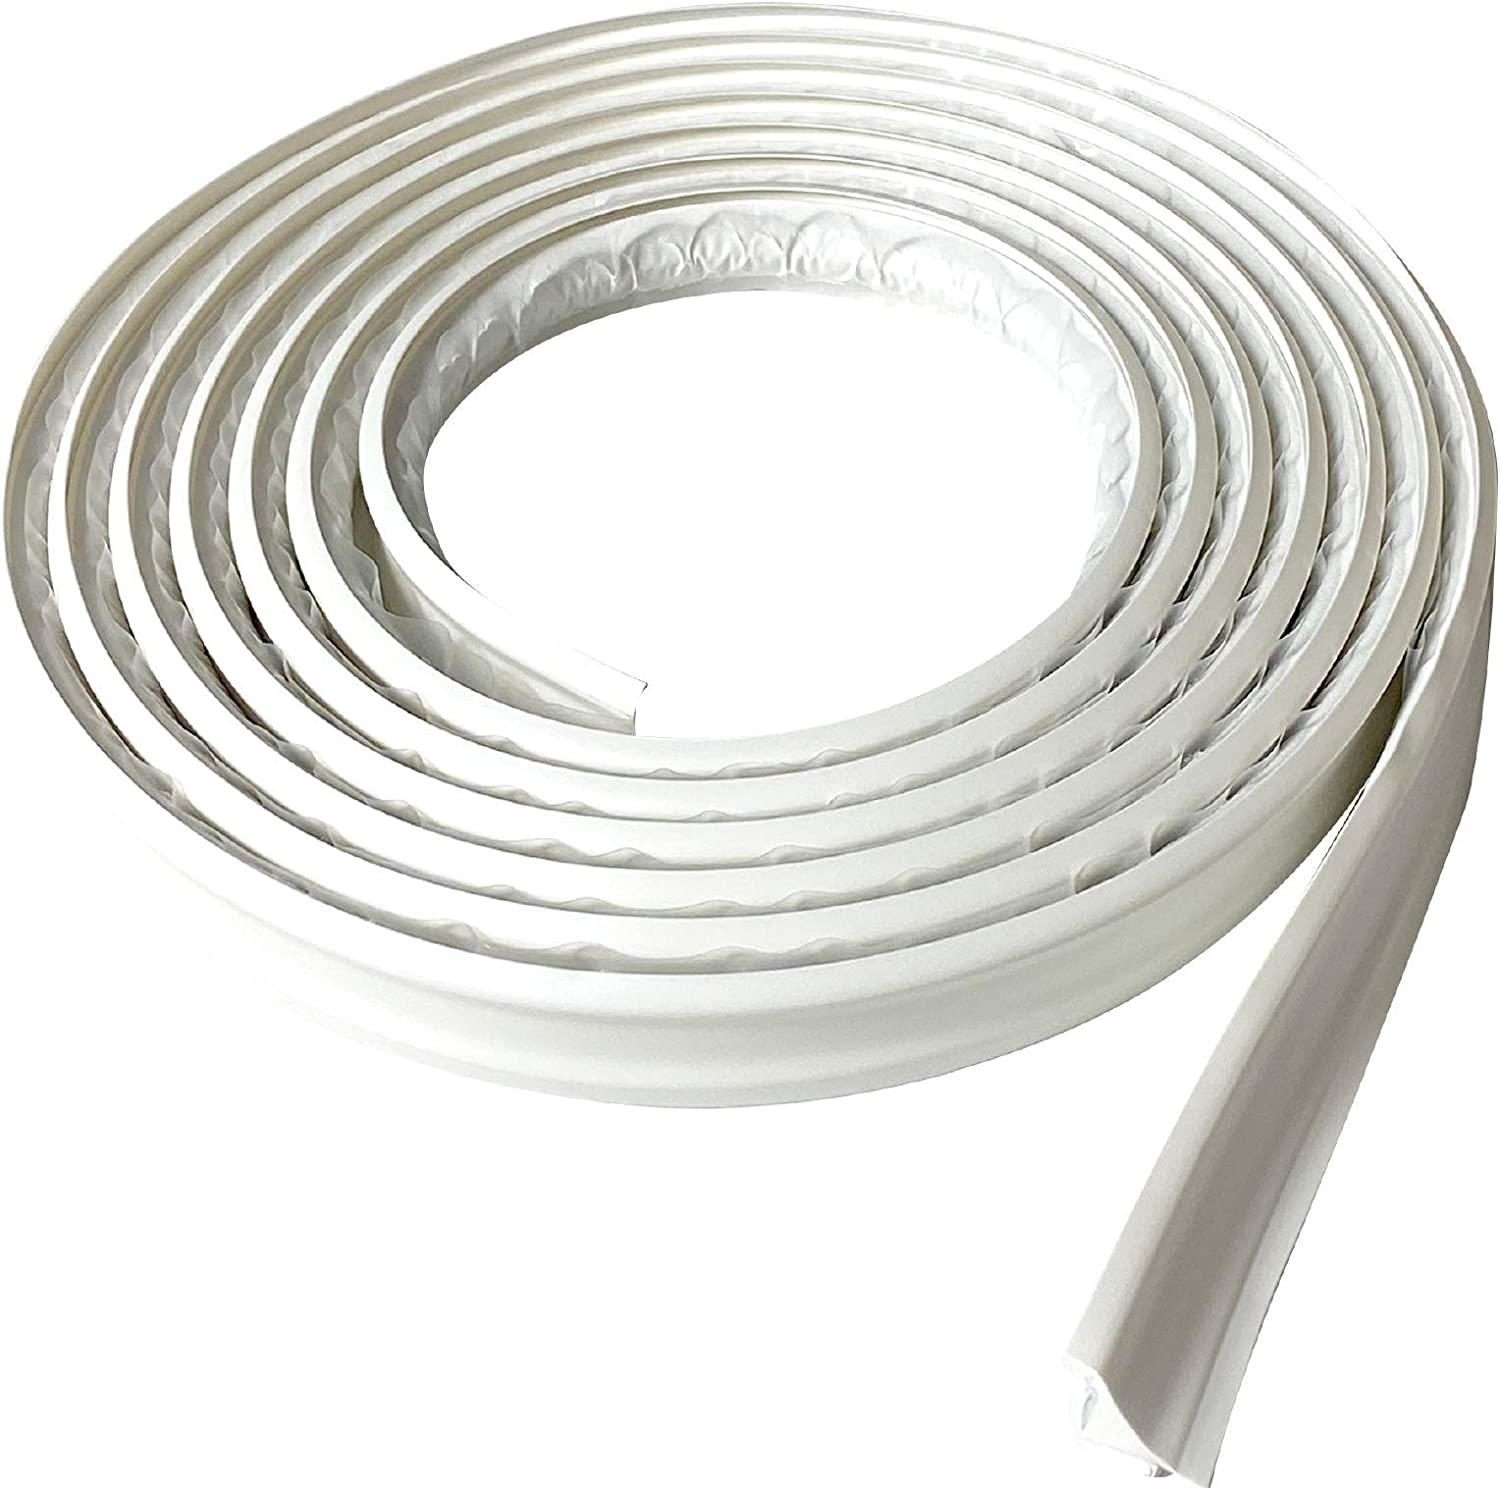 Baseboard White Ceiling Tile Edge Wall Corner Flexible Trim Caulk Strip Peel and Stick Trim for Molding Floor